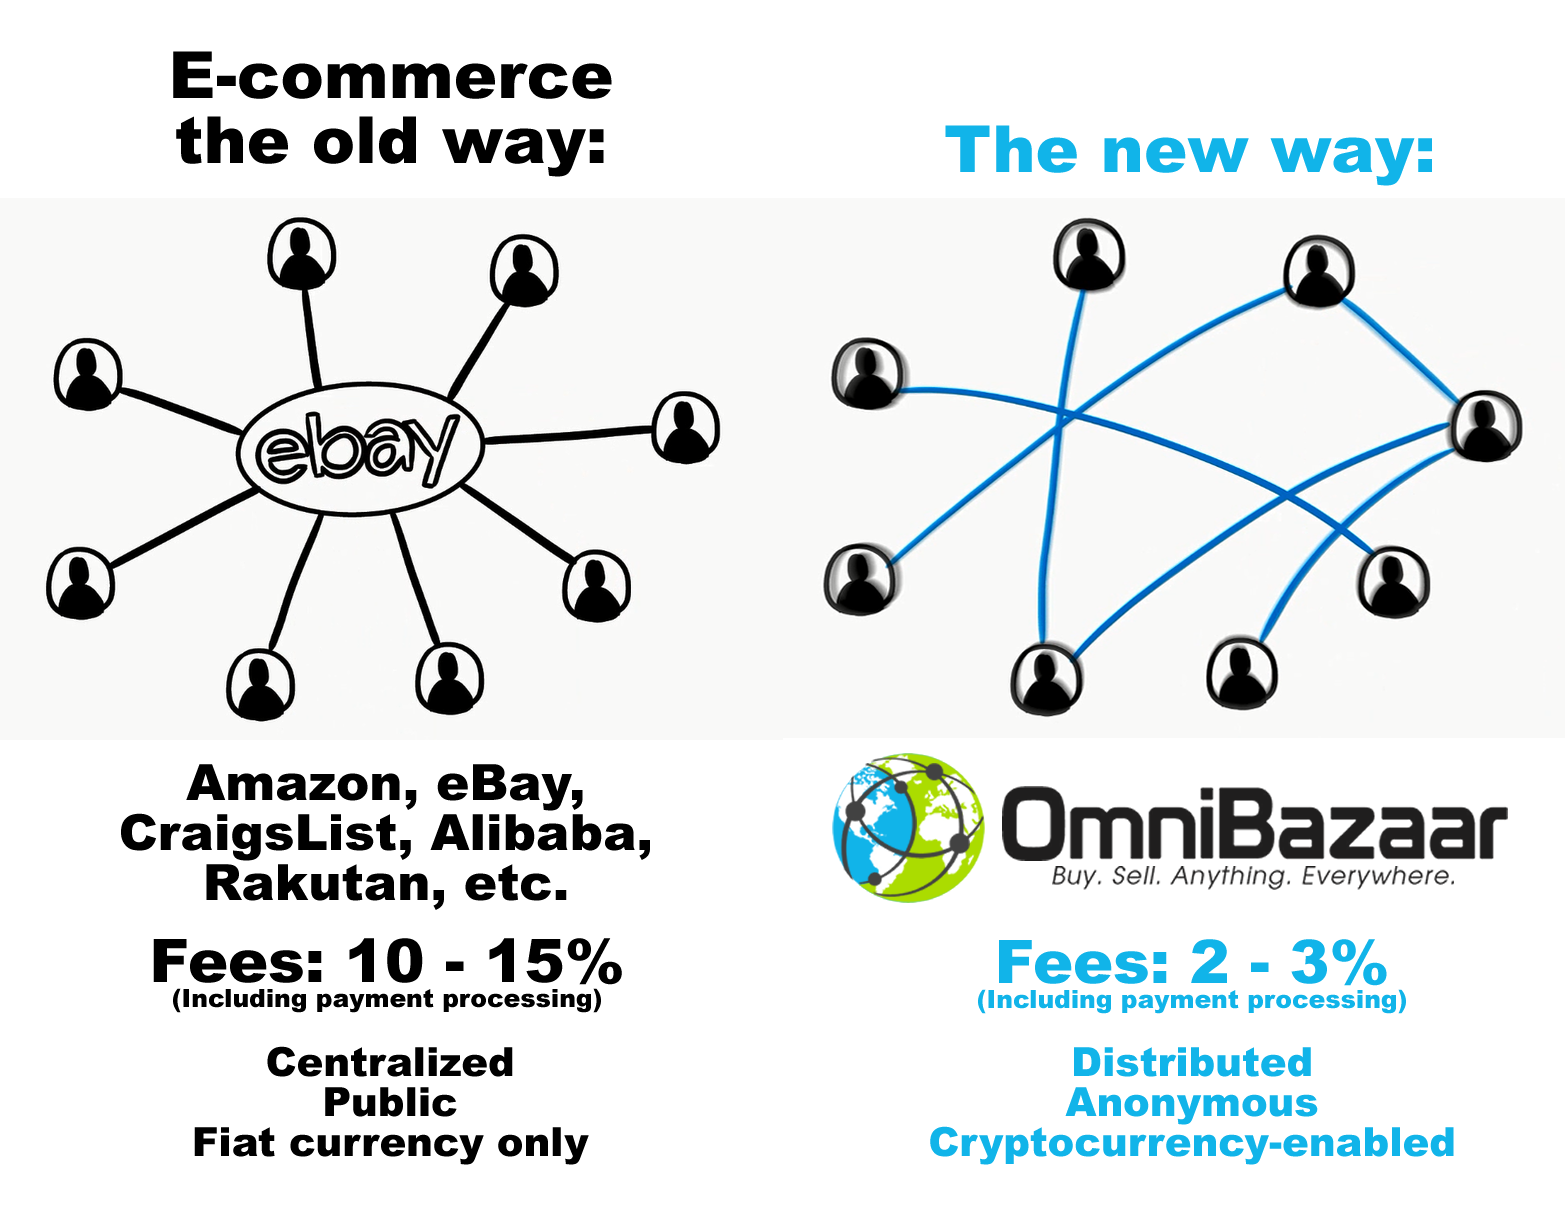 omnicoin cryptocurrency